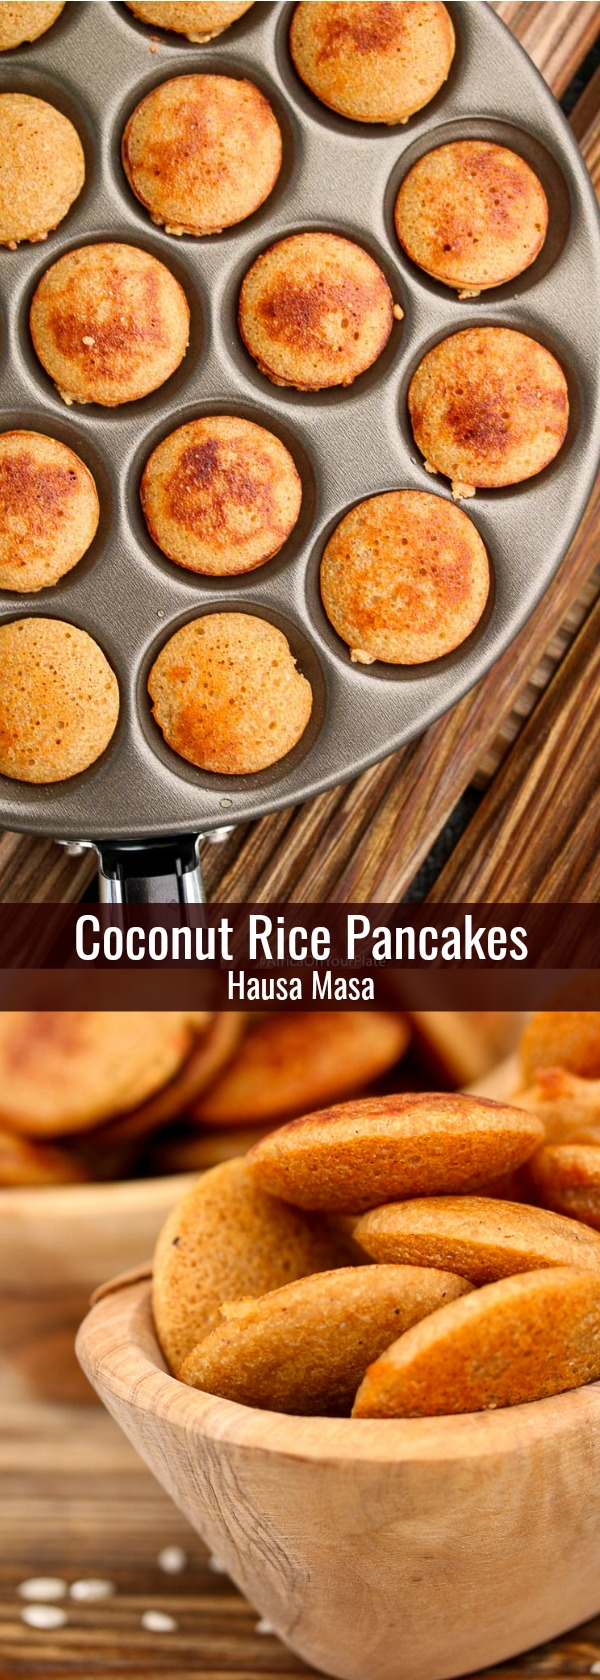 These Coconut Rice Pancakes (Hausa Masa) are a delicious twist on the Nigerian Hausa Masa with a slightly crusty exterior and a light fluffy interior. Serve with some maple or date syrup for a vegan and gluten free breakfast or snack idea.